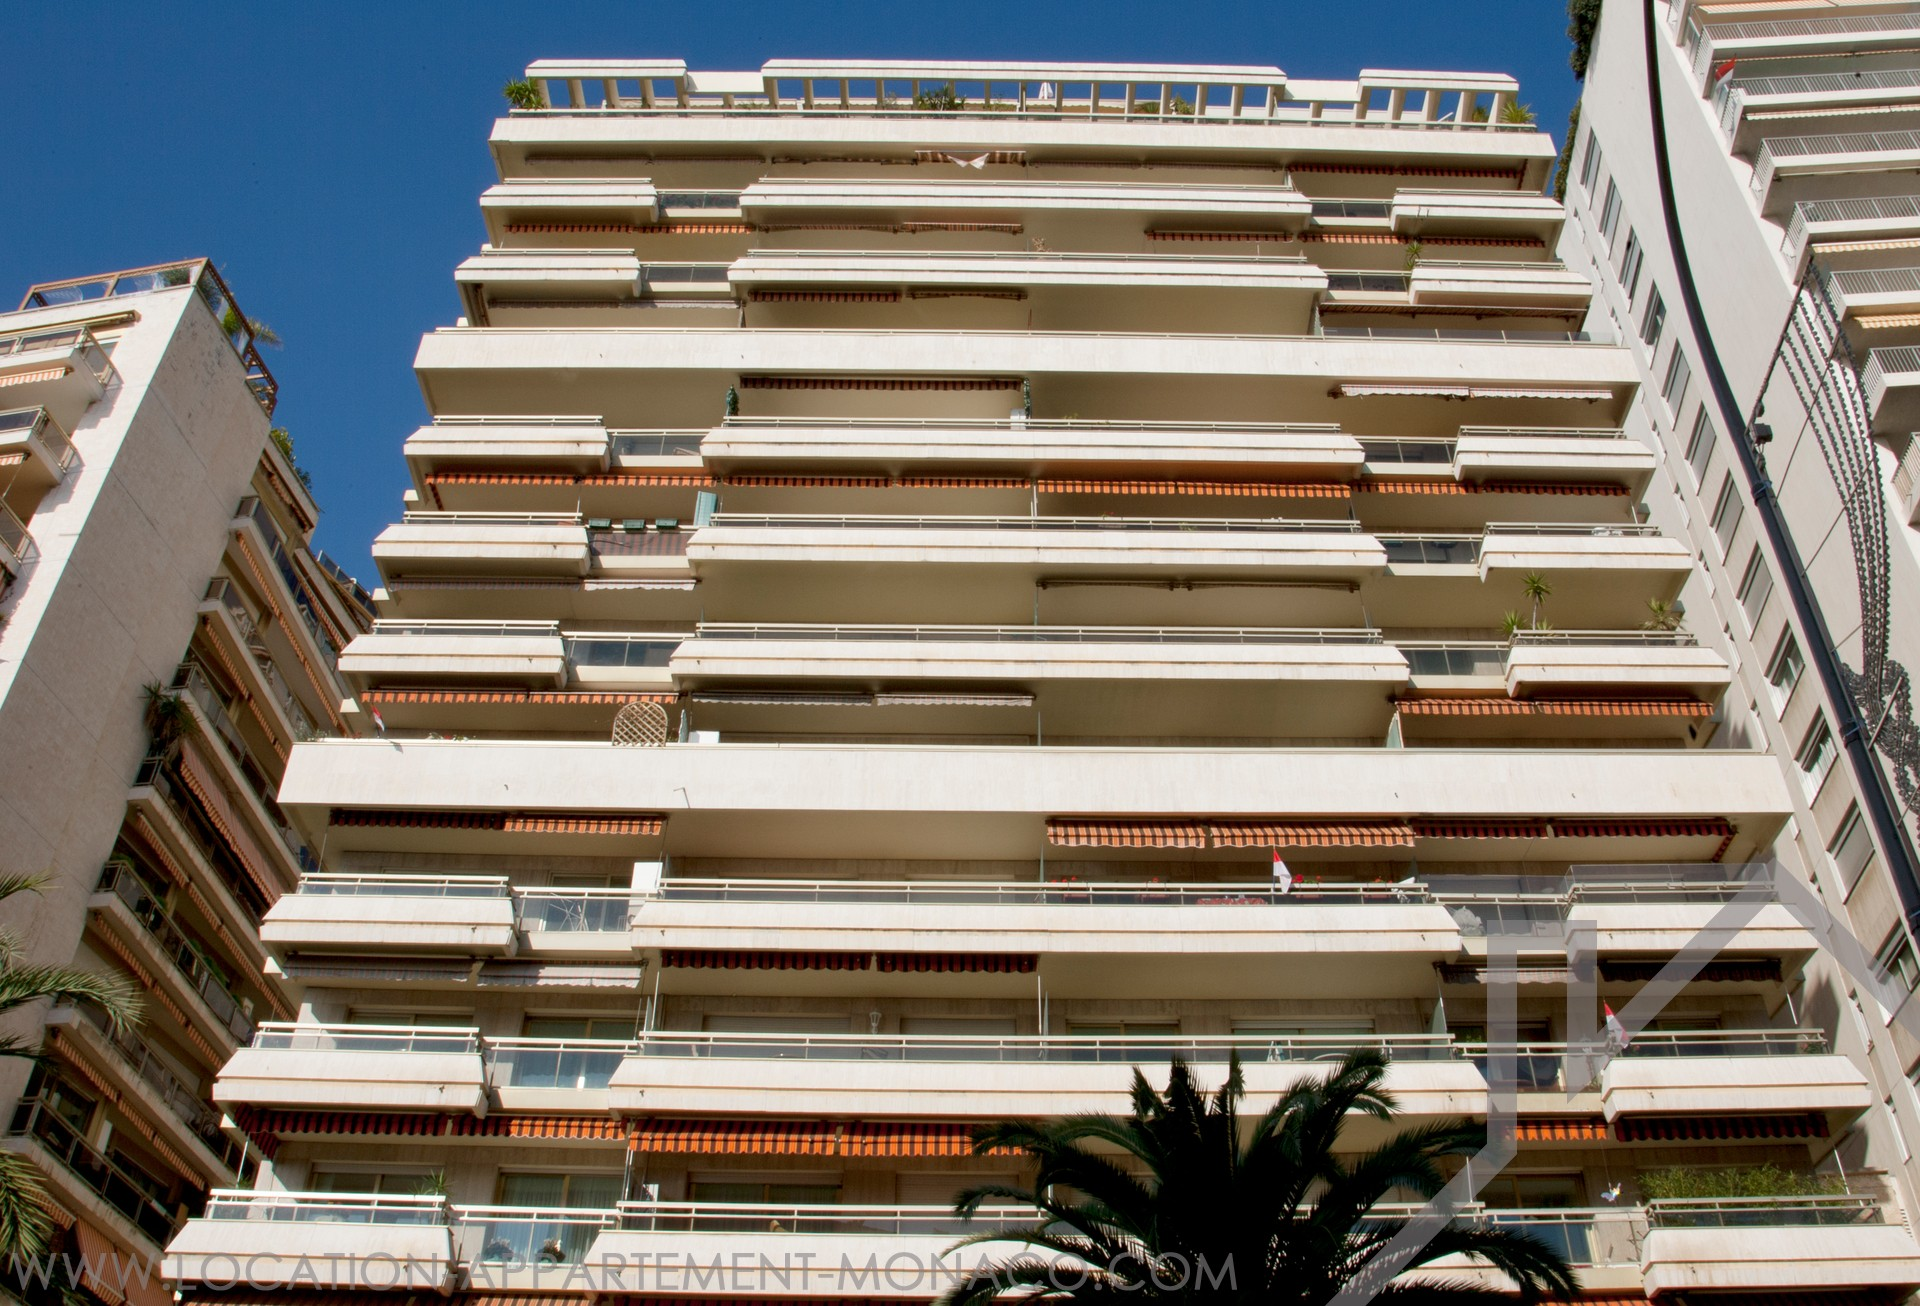 2 rooms Château Amiral - Apartments for rent in Monaco